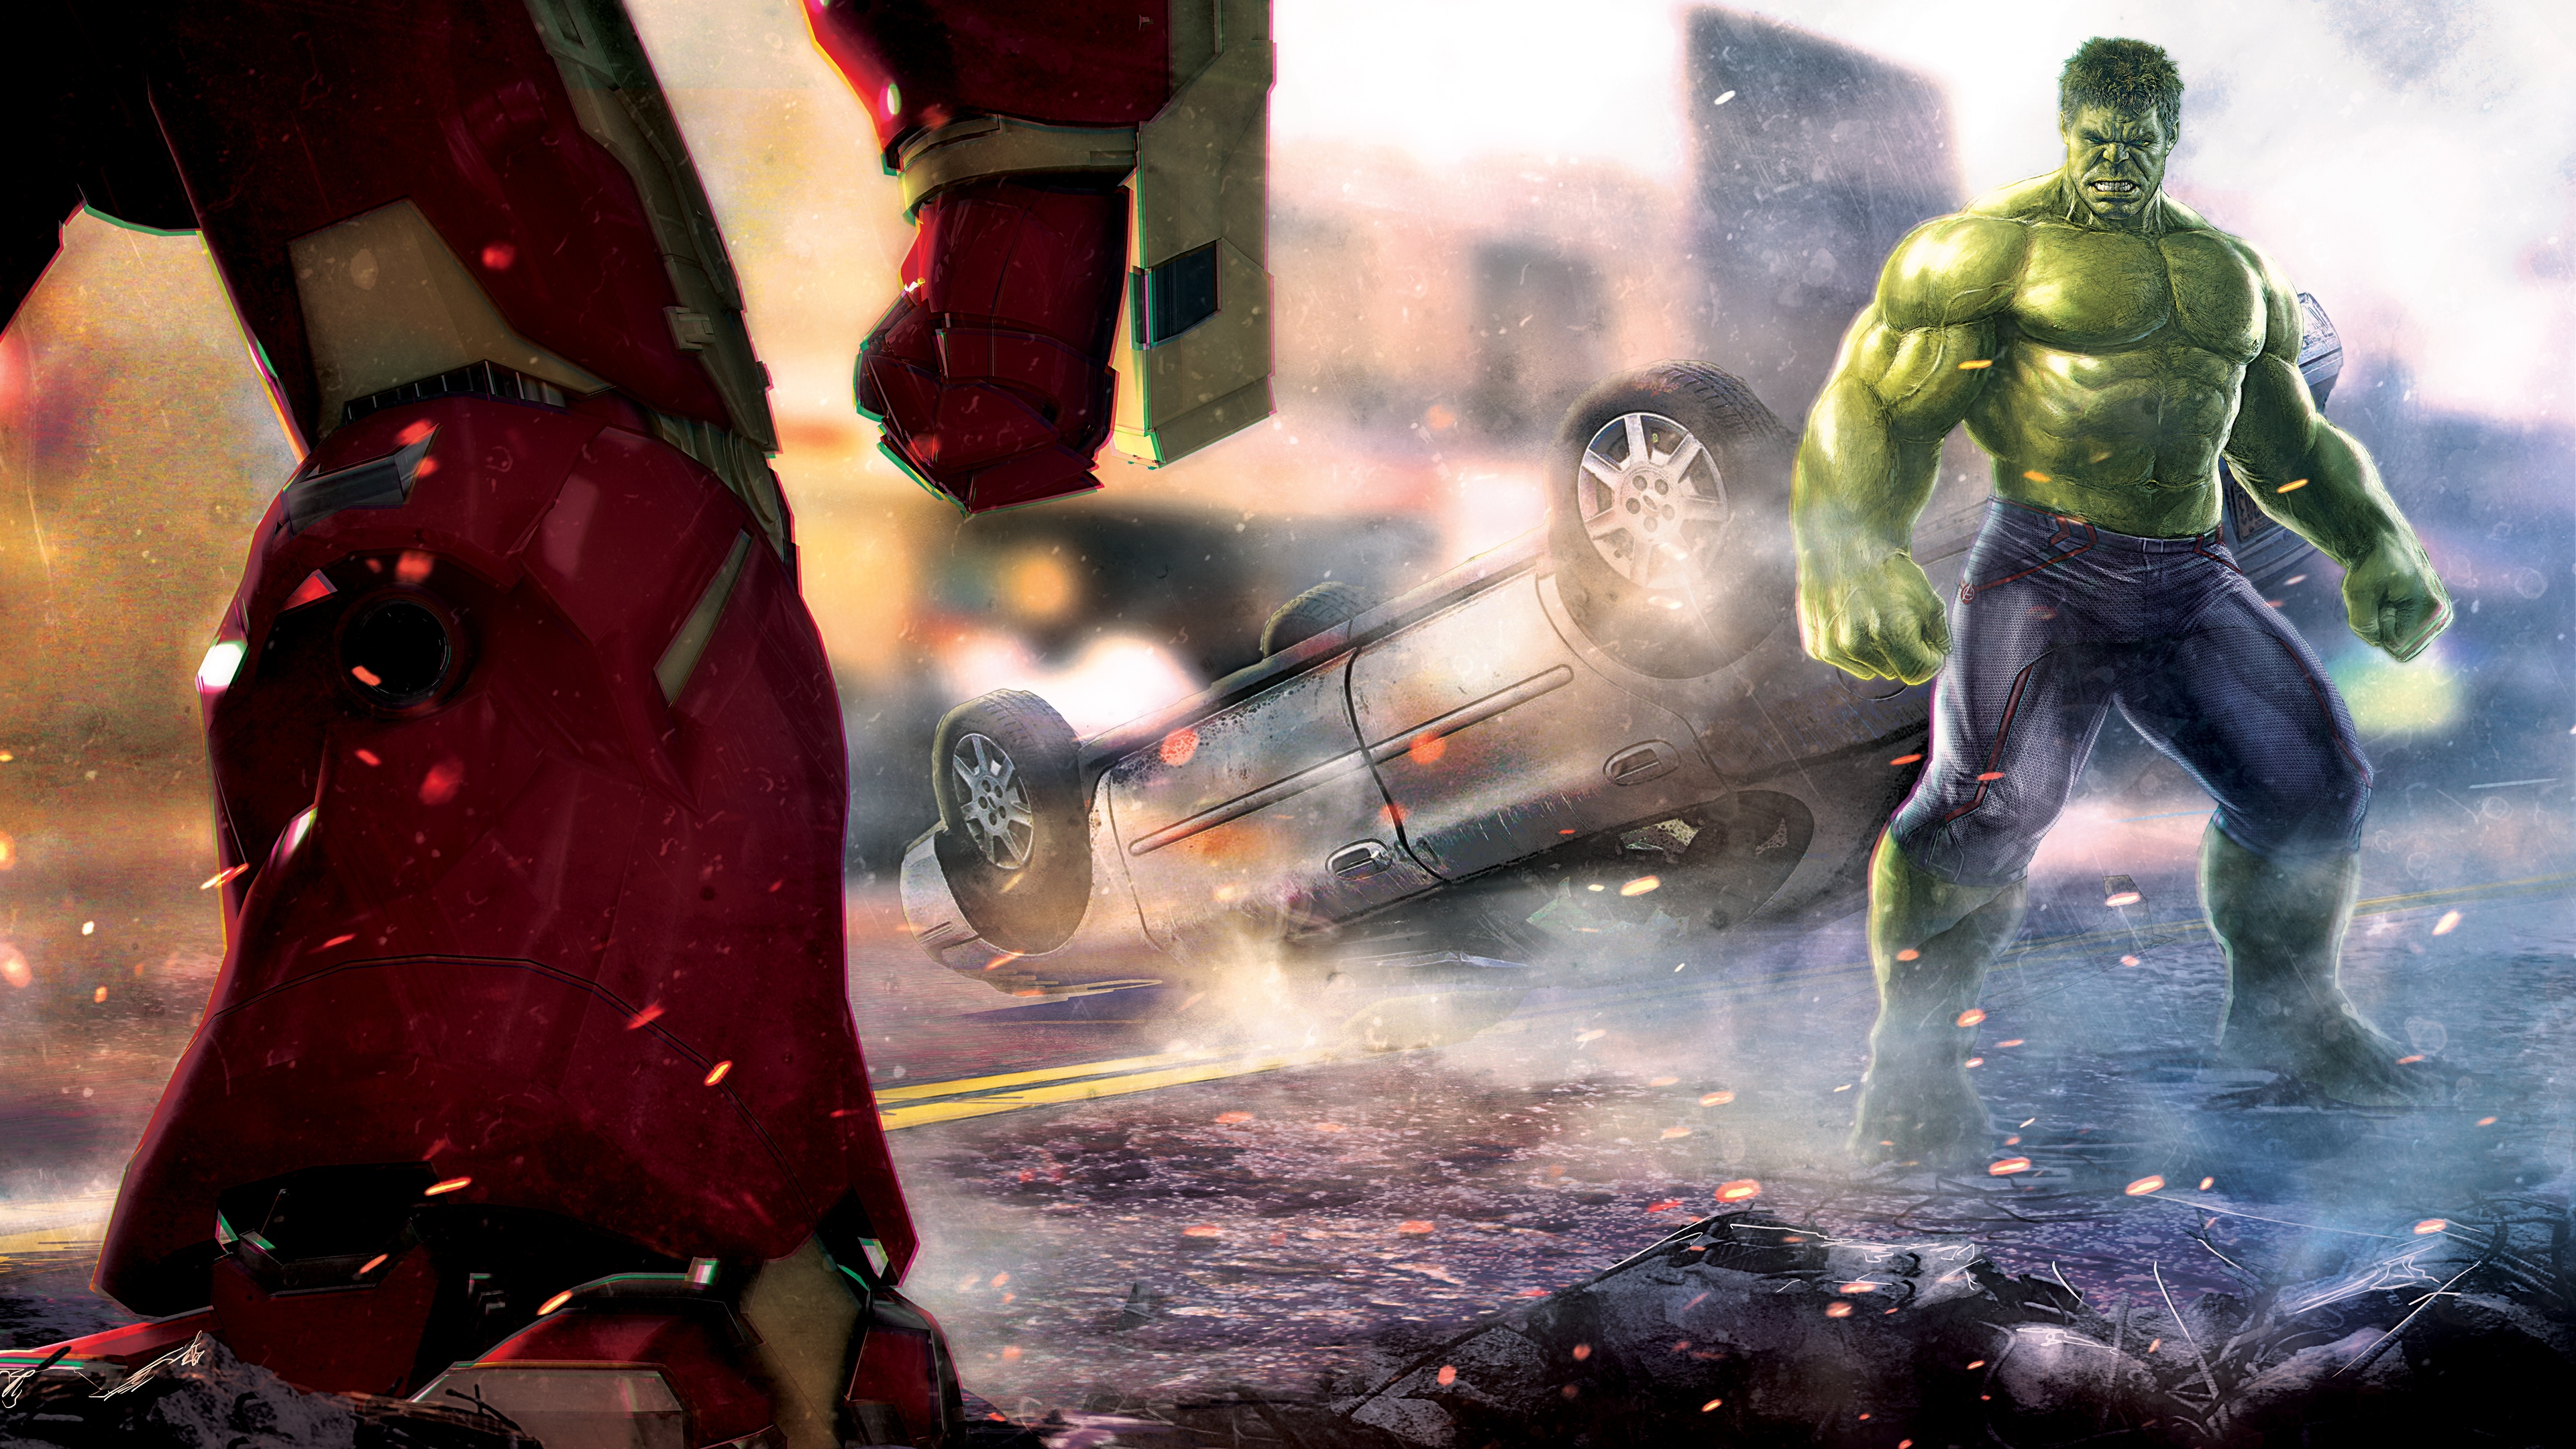 hulk and iron hulkuster fighting artwork 1536521738 - Hulk And Iron Hulkuster Fighting Artwork - superheroes wallpapers, hulk wallpapers, hd-wallpapers, artwork wallpapers, 5k wallpapers, 4k-wallpapers